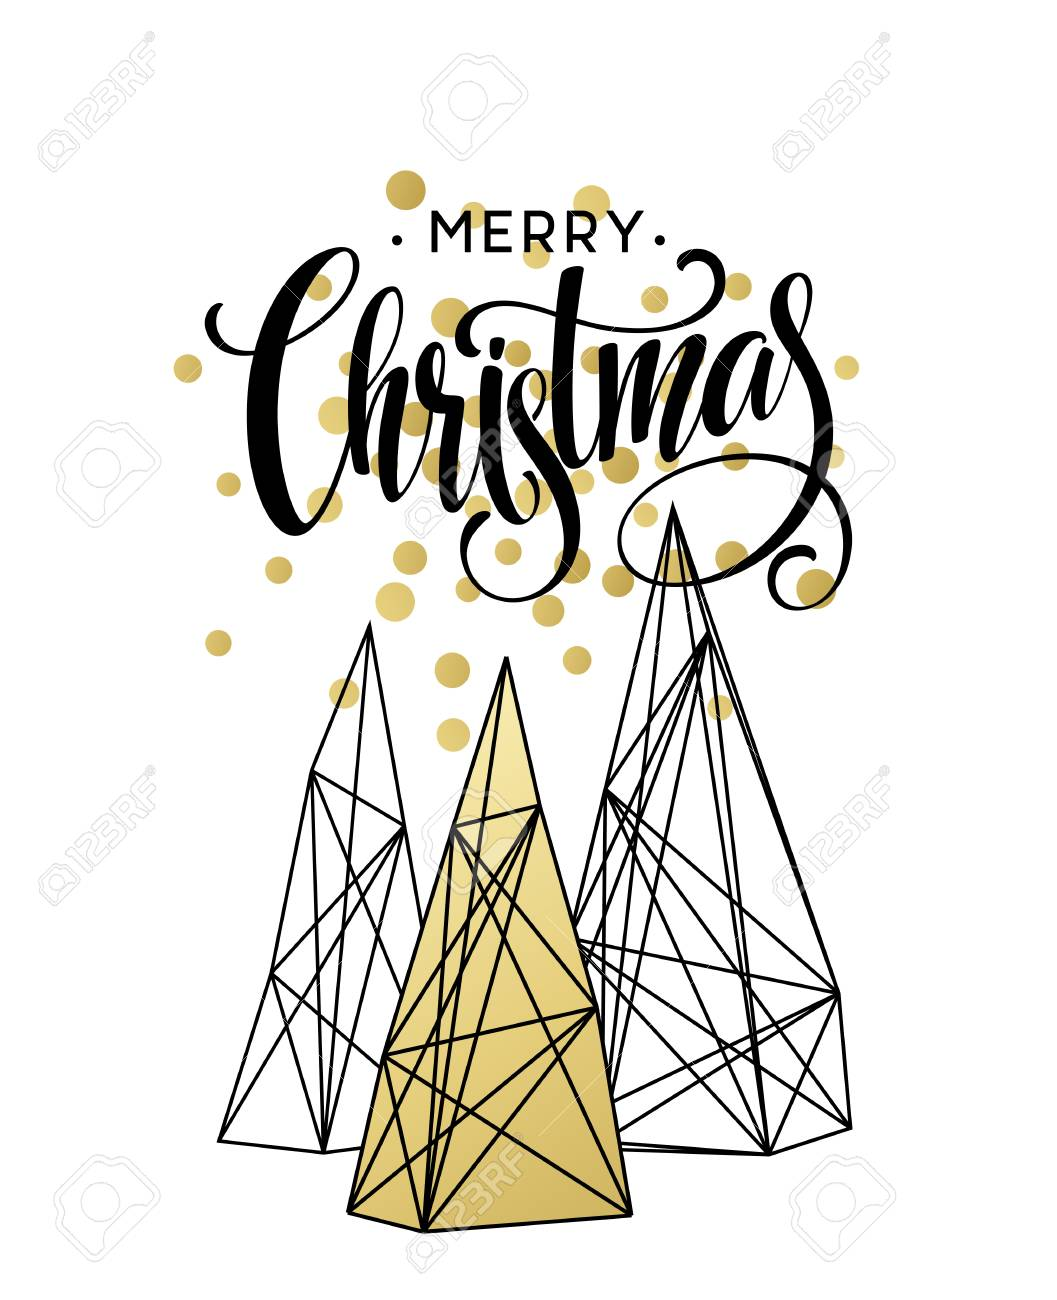 Christmas Greeting Card With Handdrawn Lettering. Golden, Black ...